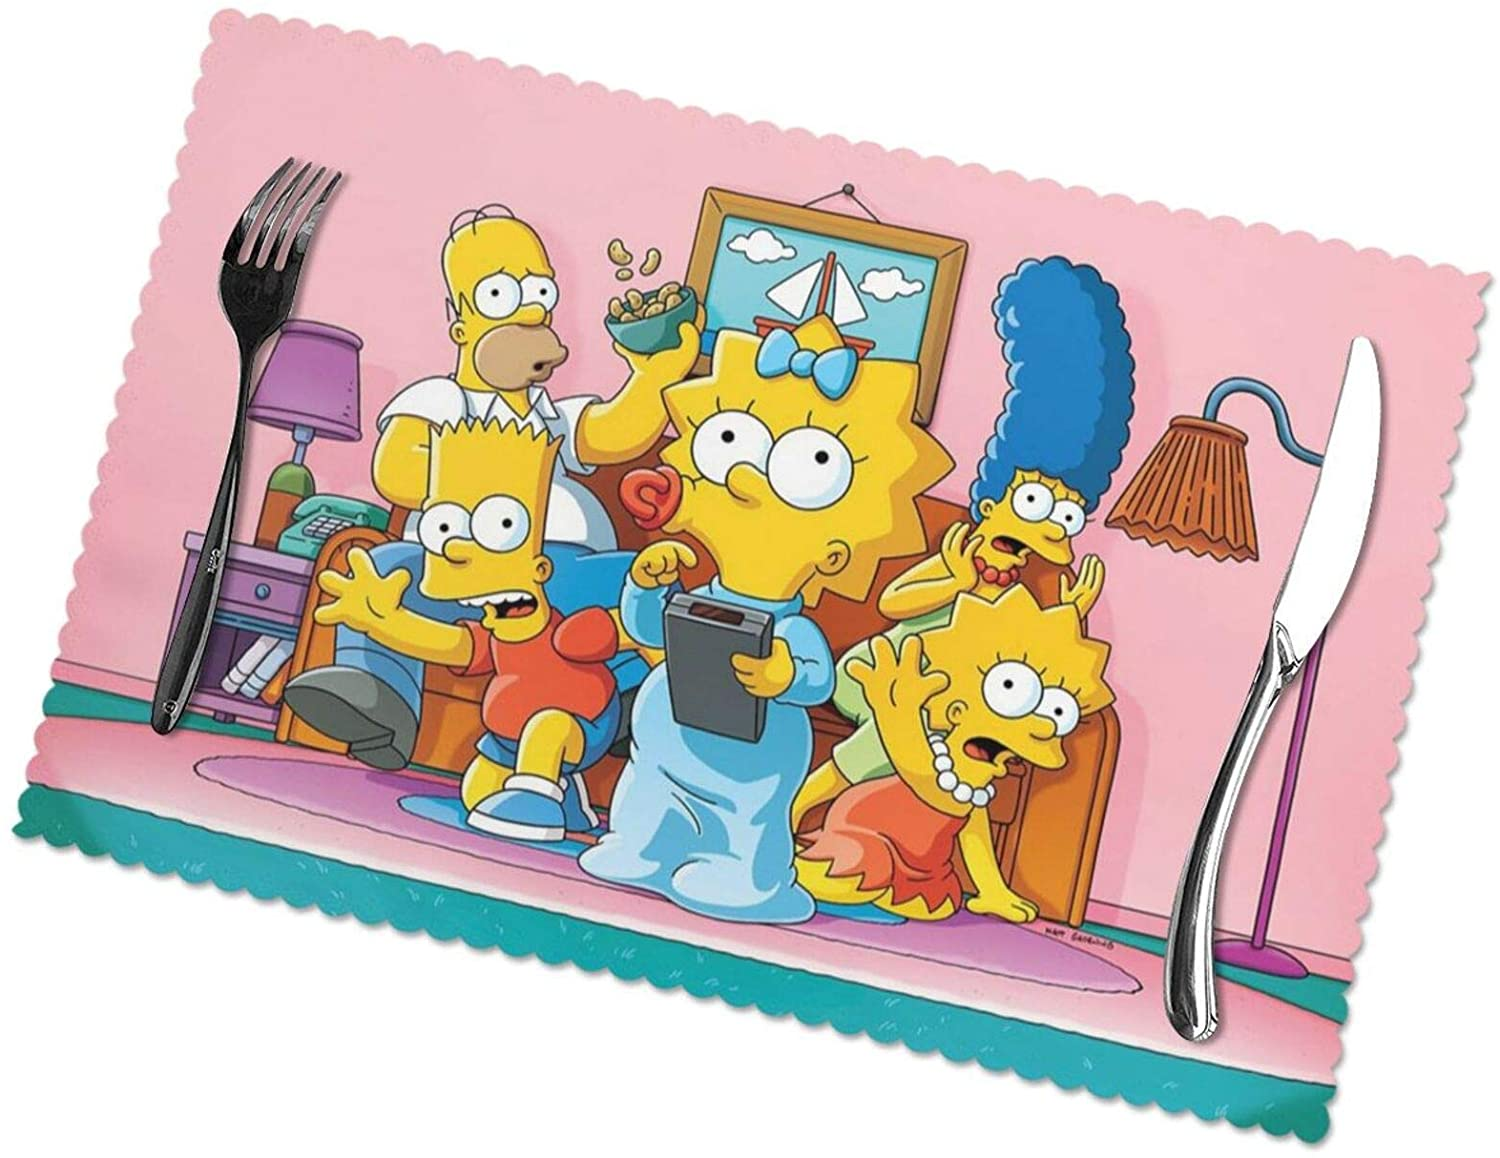 Xutazu The Simpsons Placemats Washable Heat Resistant Non-Slip Table Mats for Kitchen Dining Table(12x18)